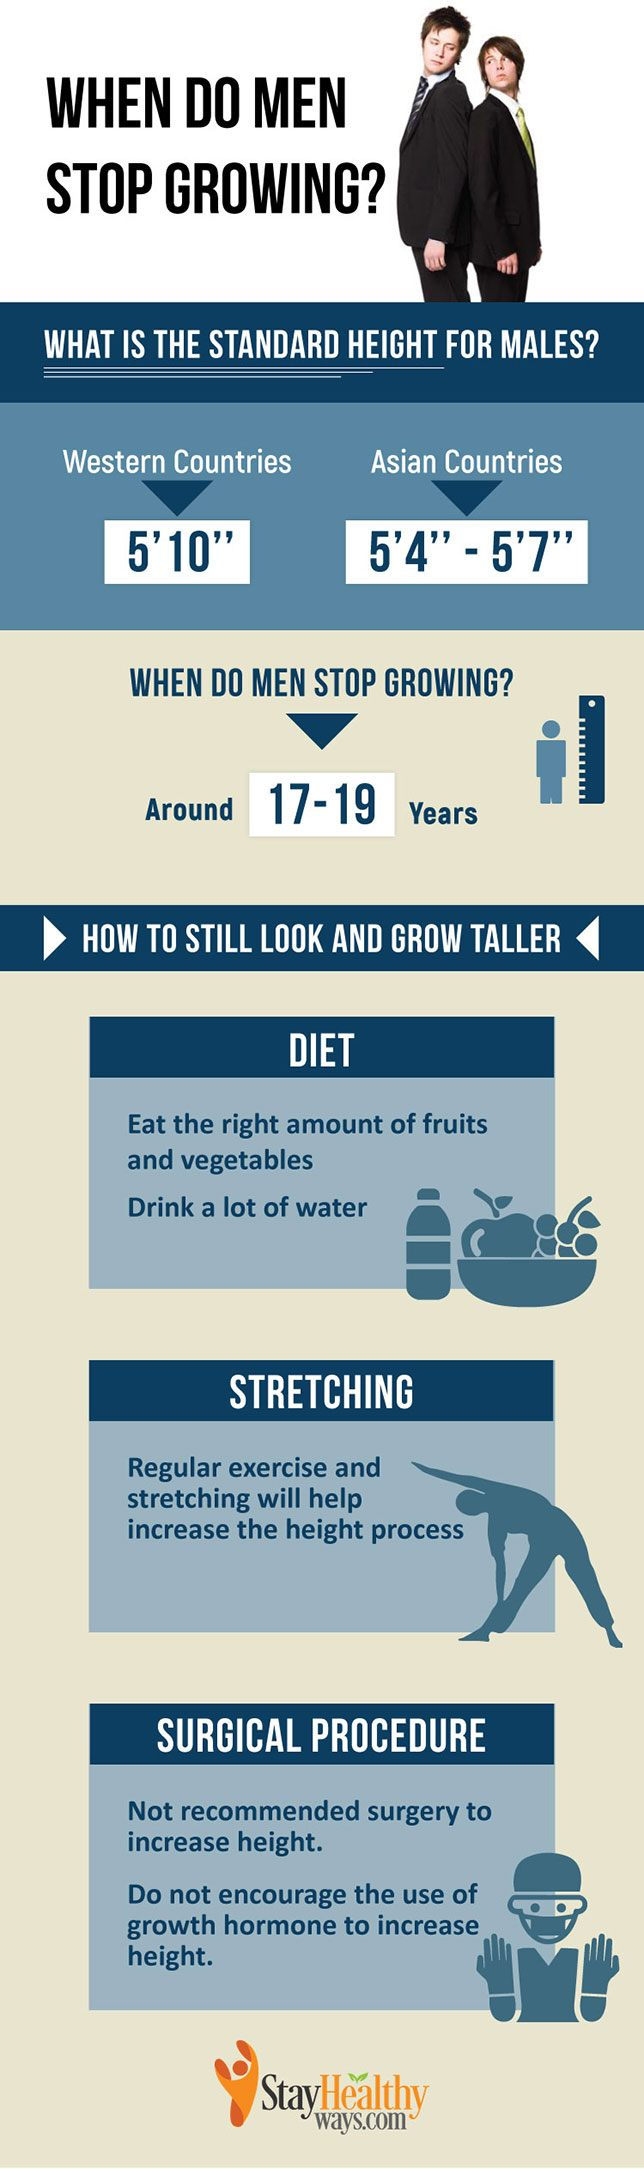 when do men stop growing infographic